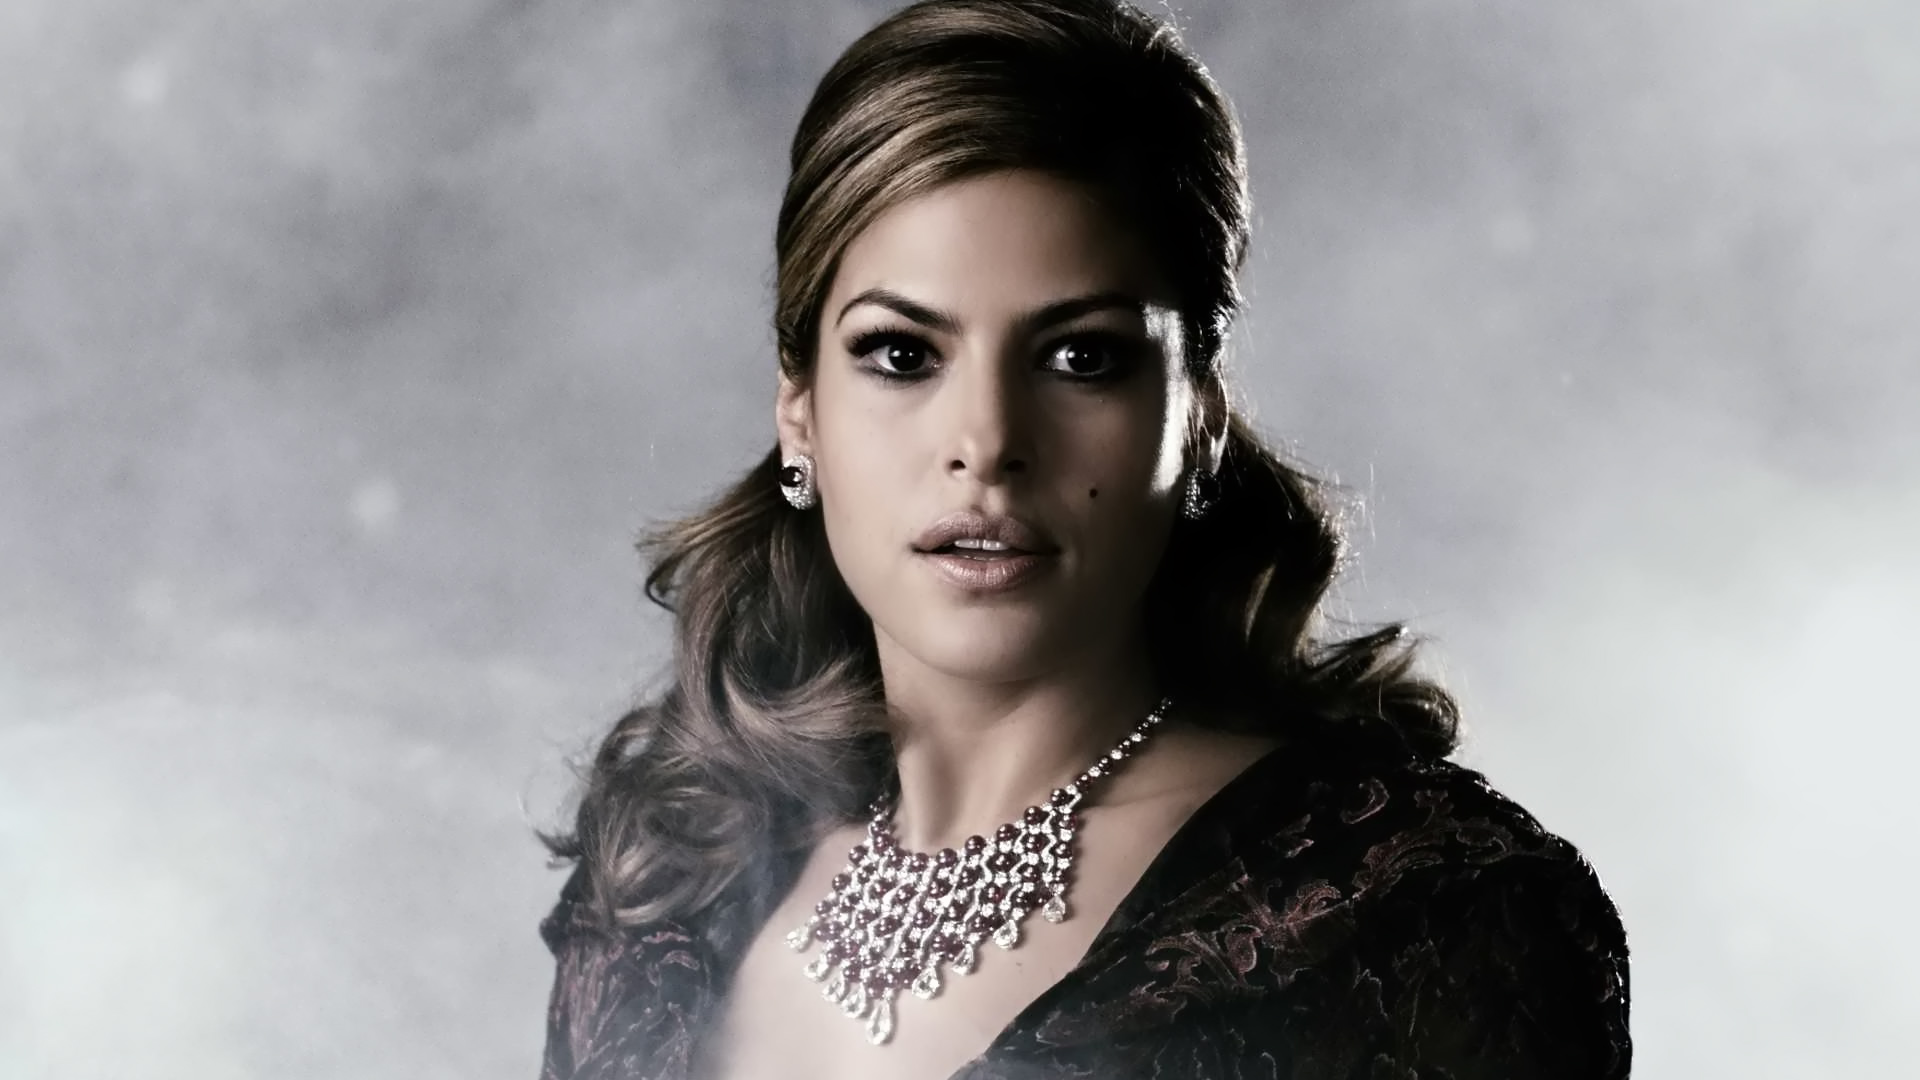 eva mendes wallpapers high quality | download free